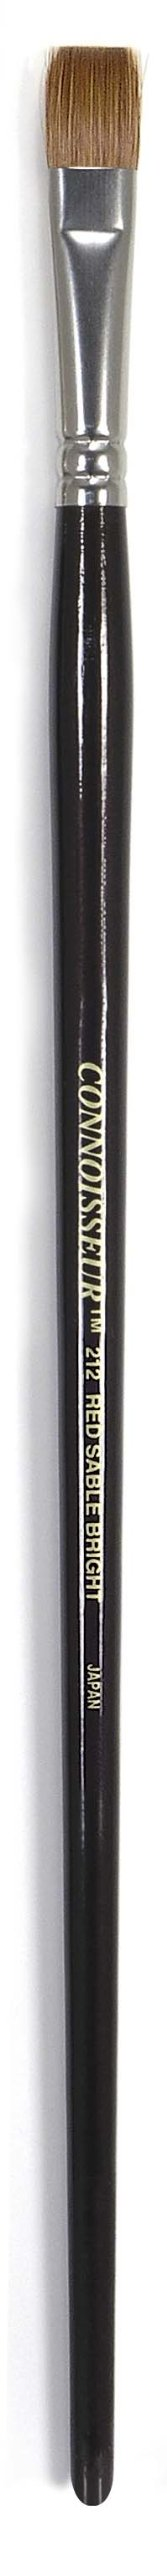 Connoisseur Pure Red Sable Brush, #12 Bright